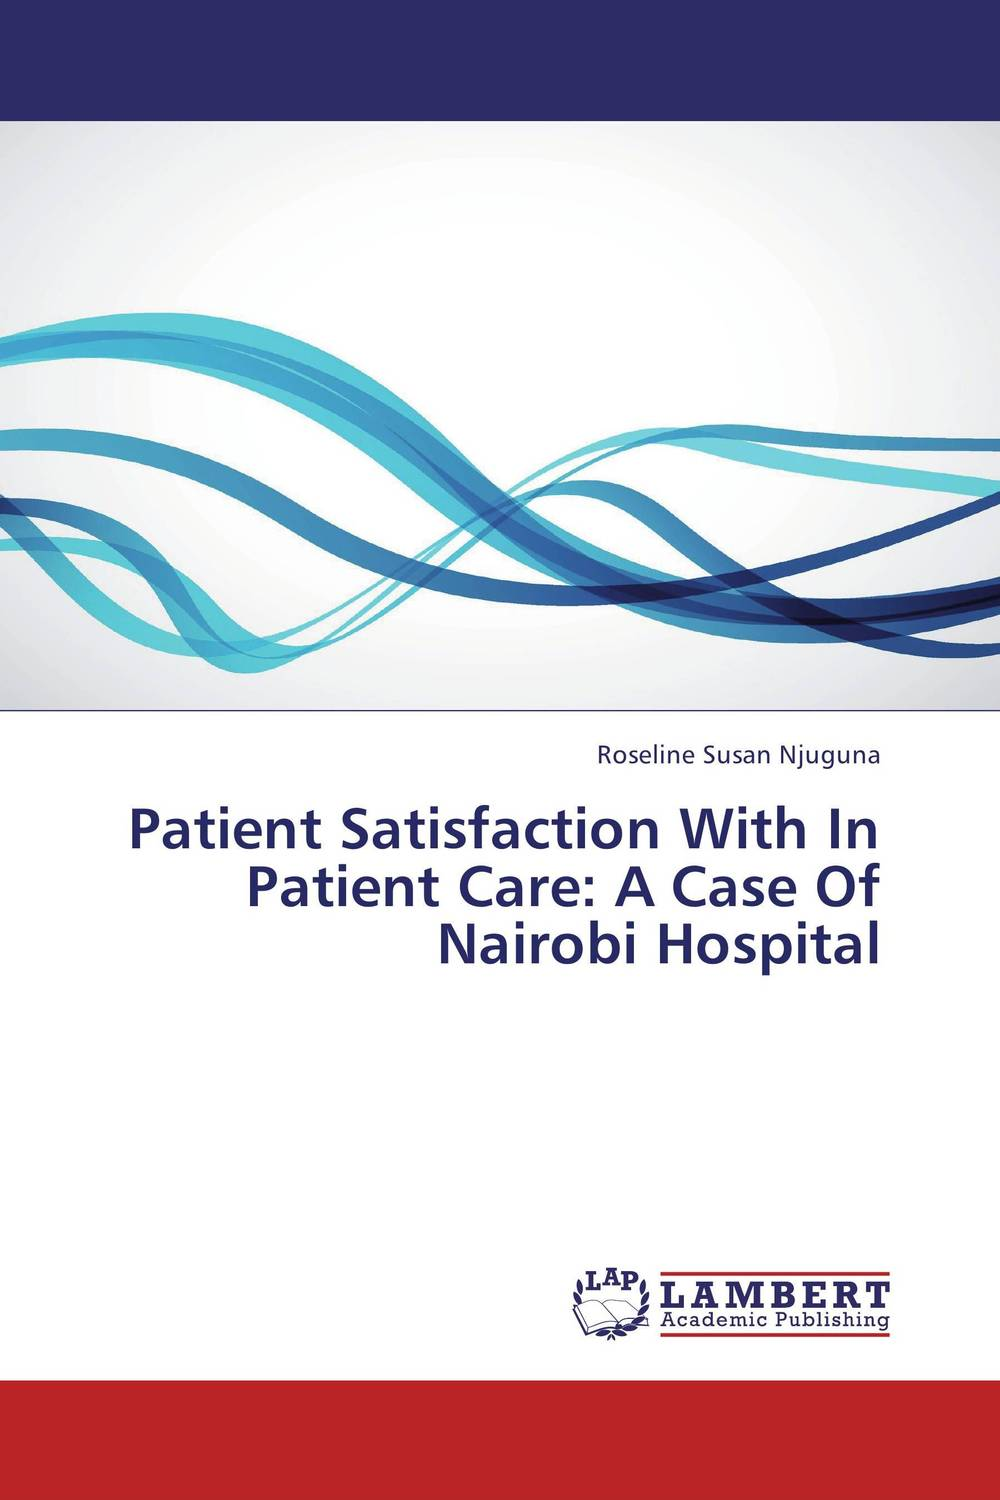 Patient Satisfaction With In Patient Care: A Case Of Nairobi Hospital supervised delivery services in ghana